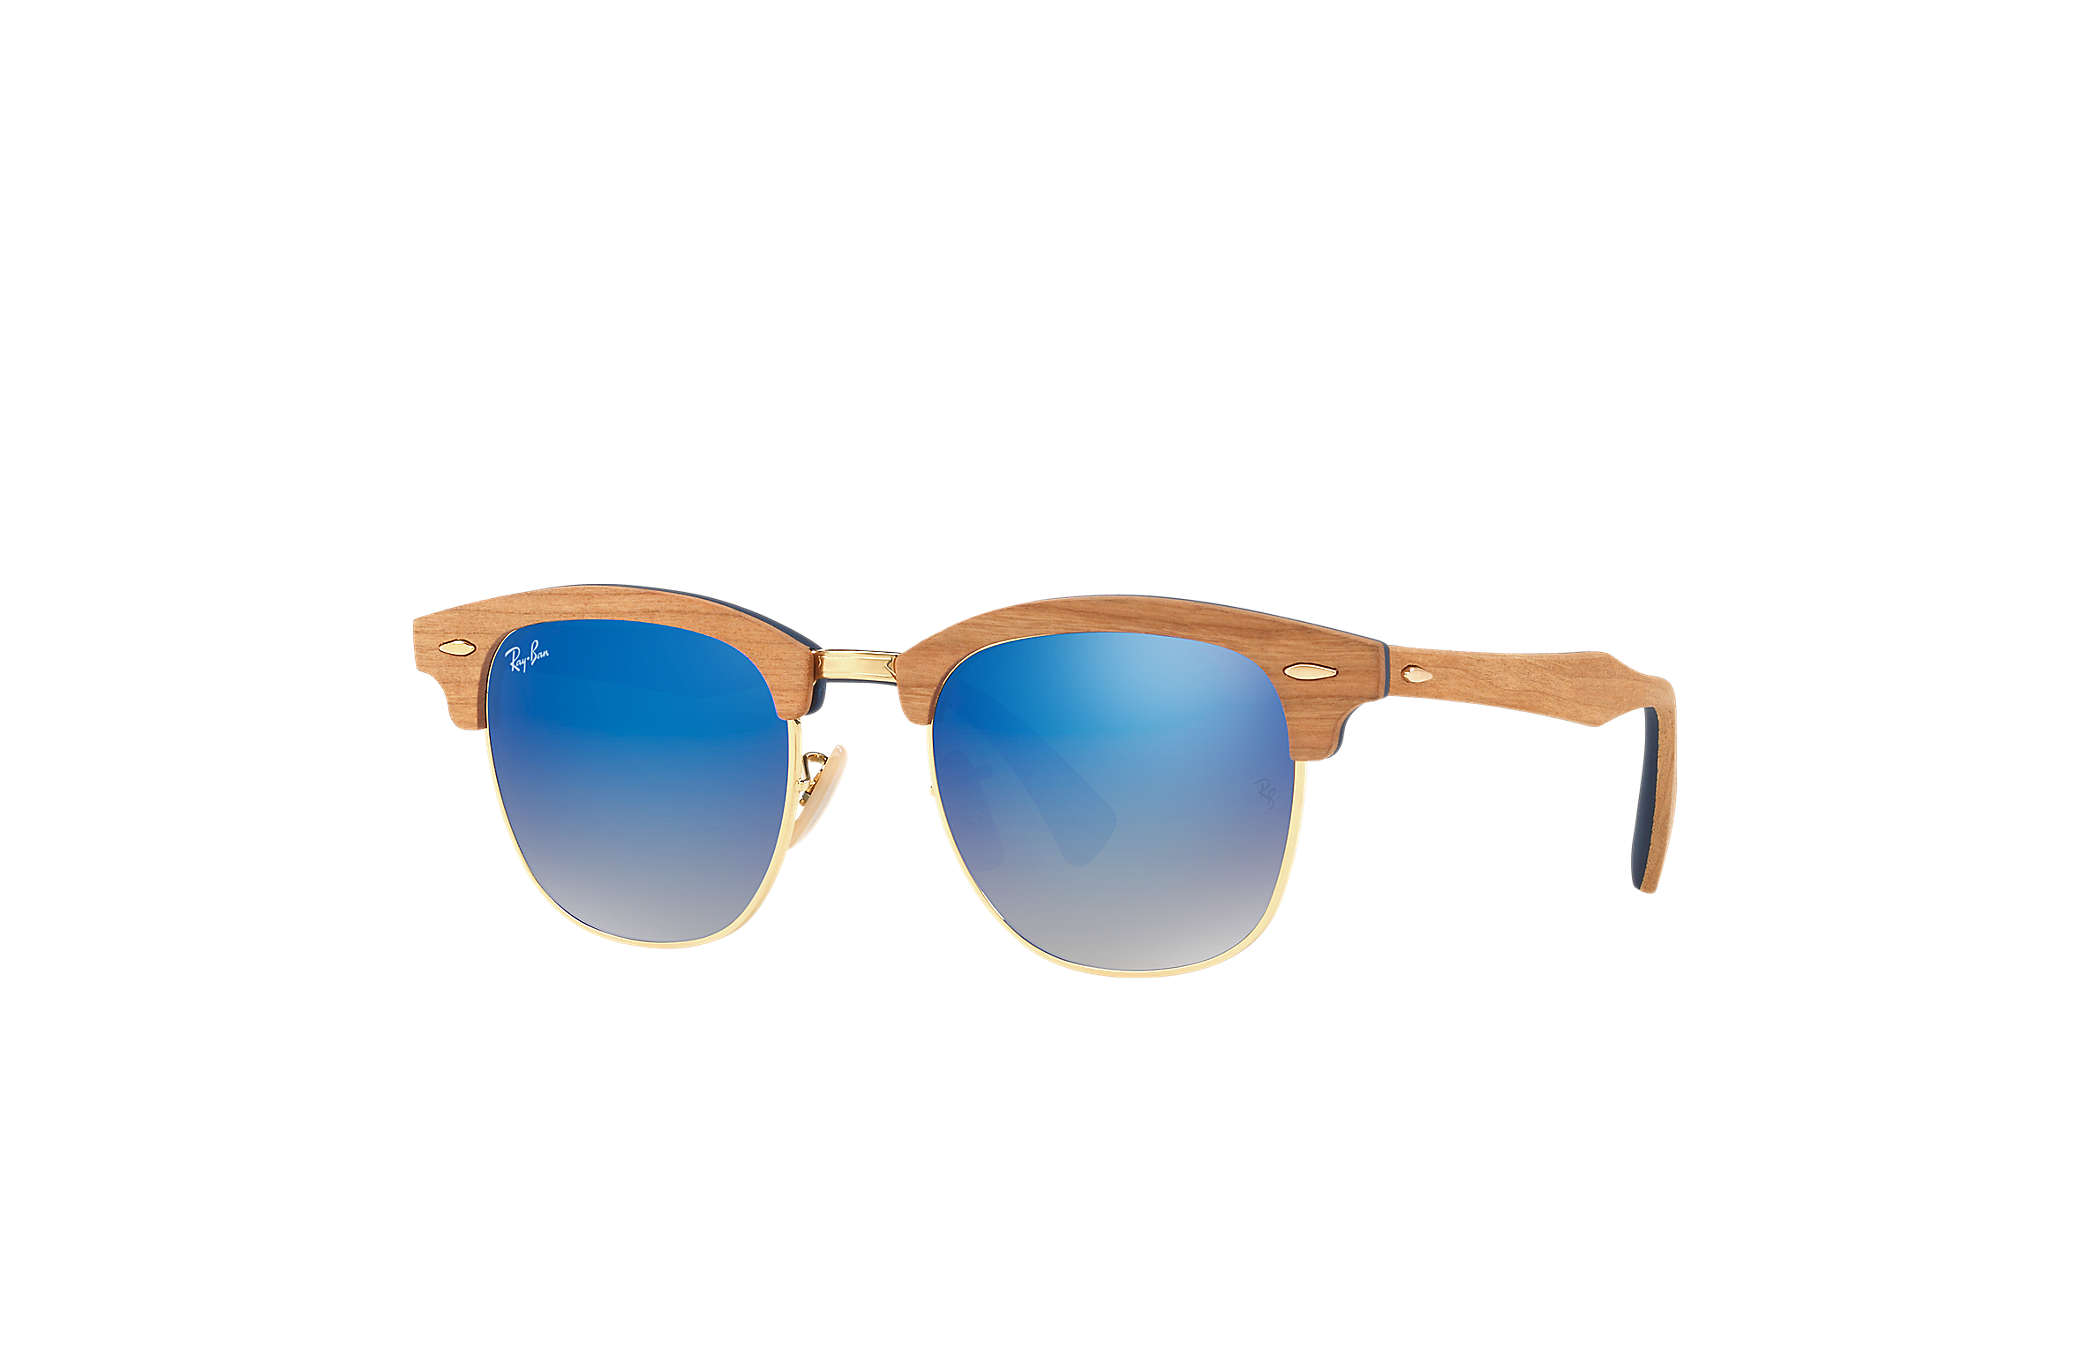 Ray-Ban Clubmaster Wood RB3016M Blue - Wood - Blue Lenses ... dea7f47262